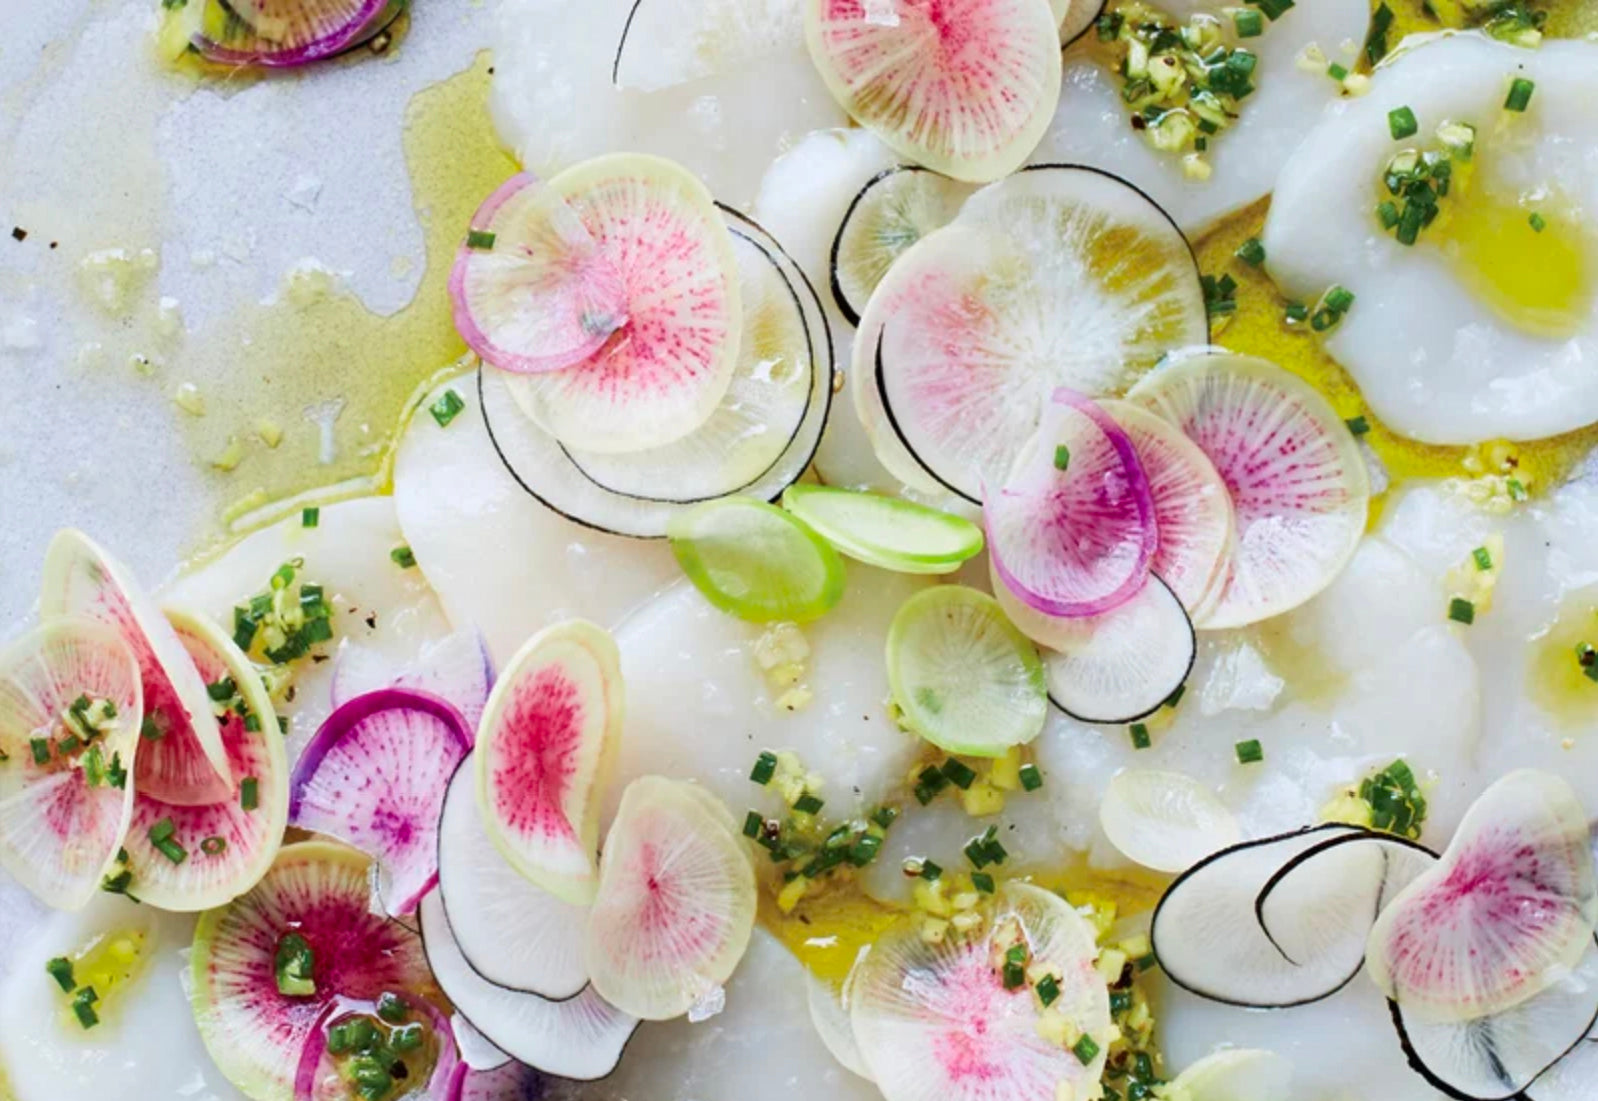 Scallop Carpaccio with Hand-Cut Ginger-Chive Pesto